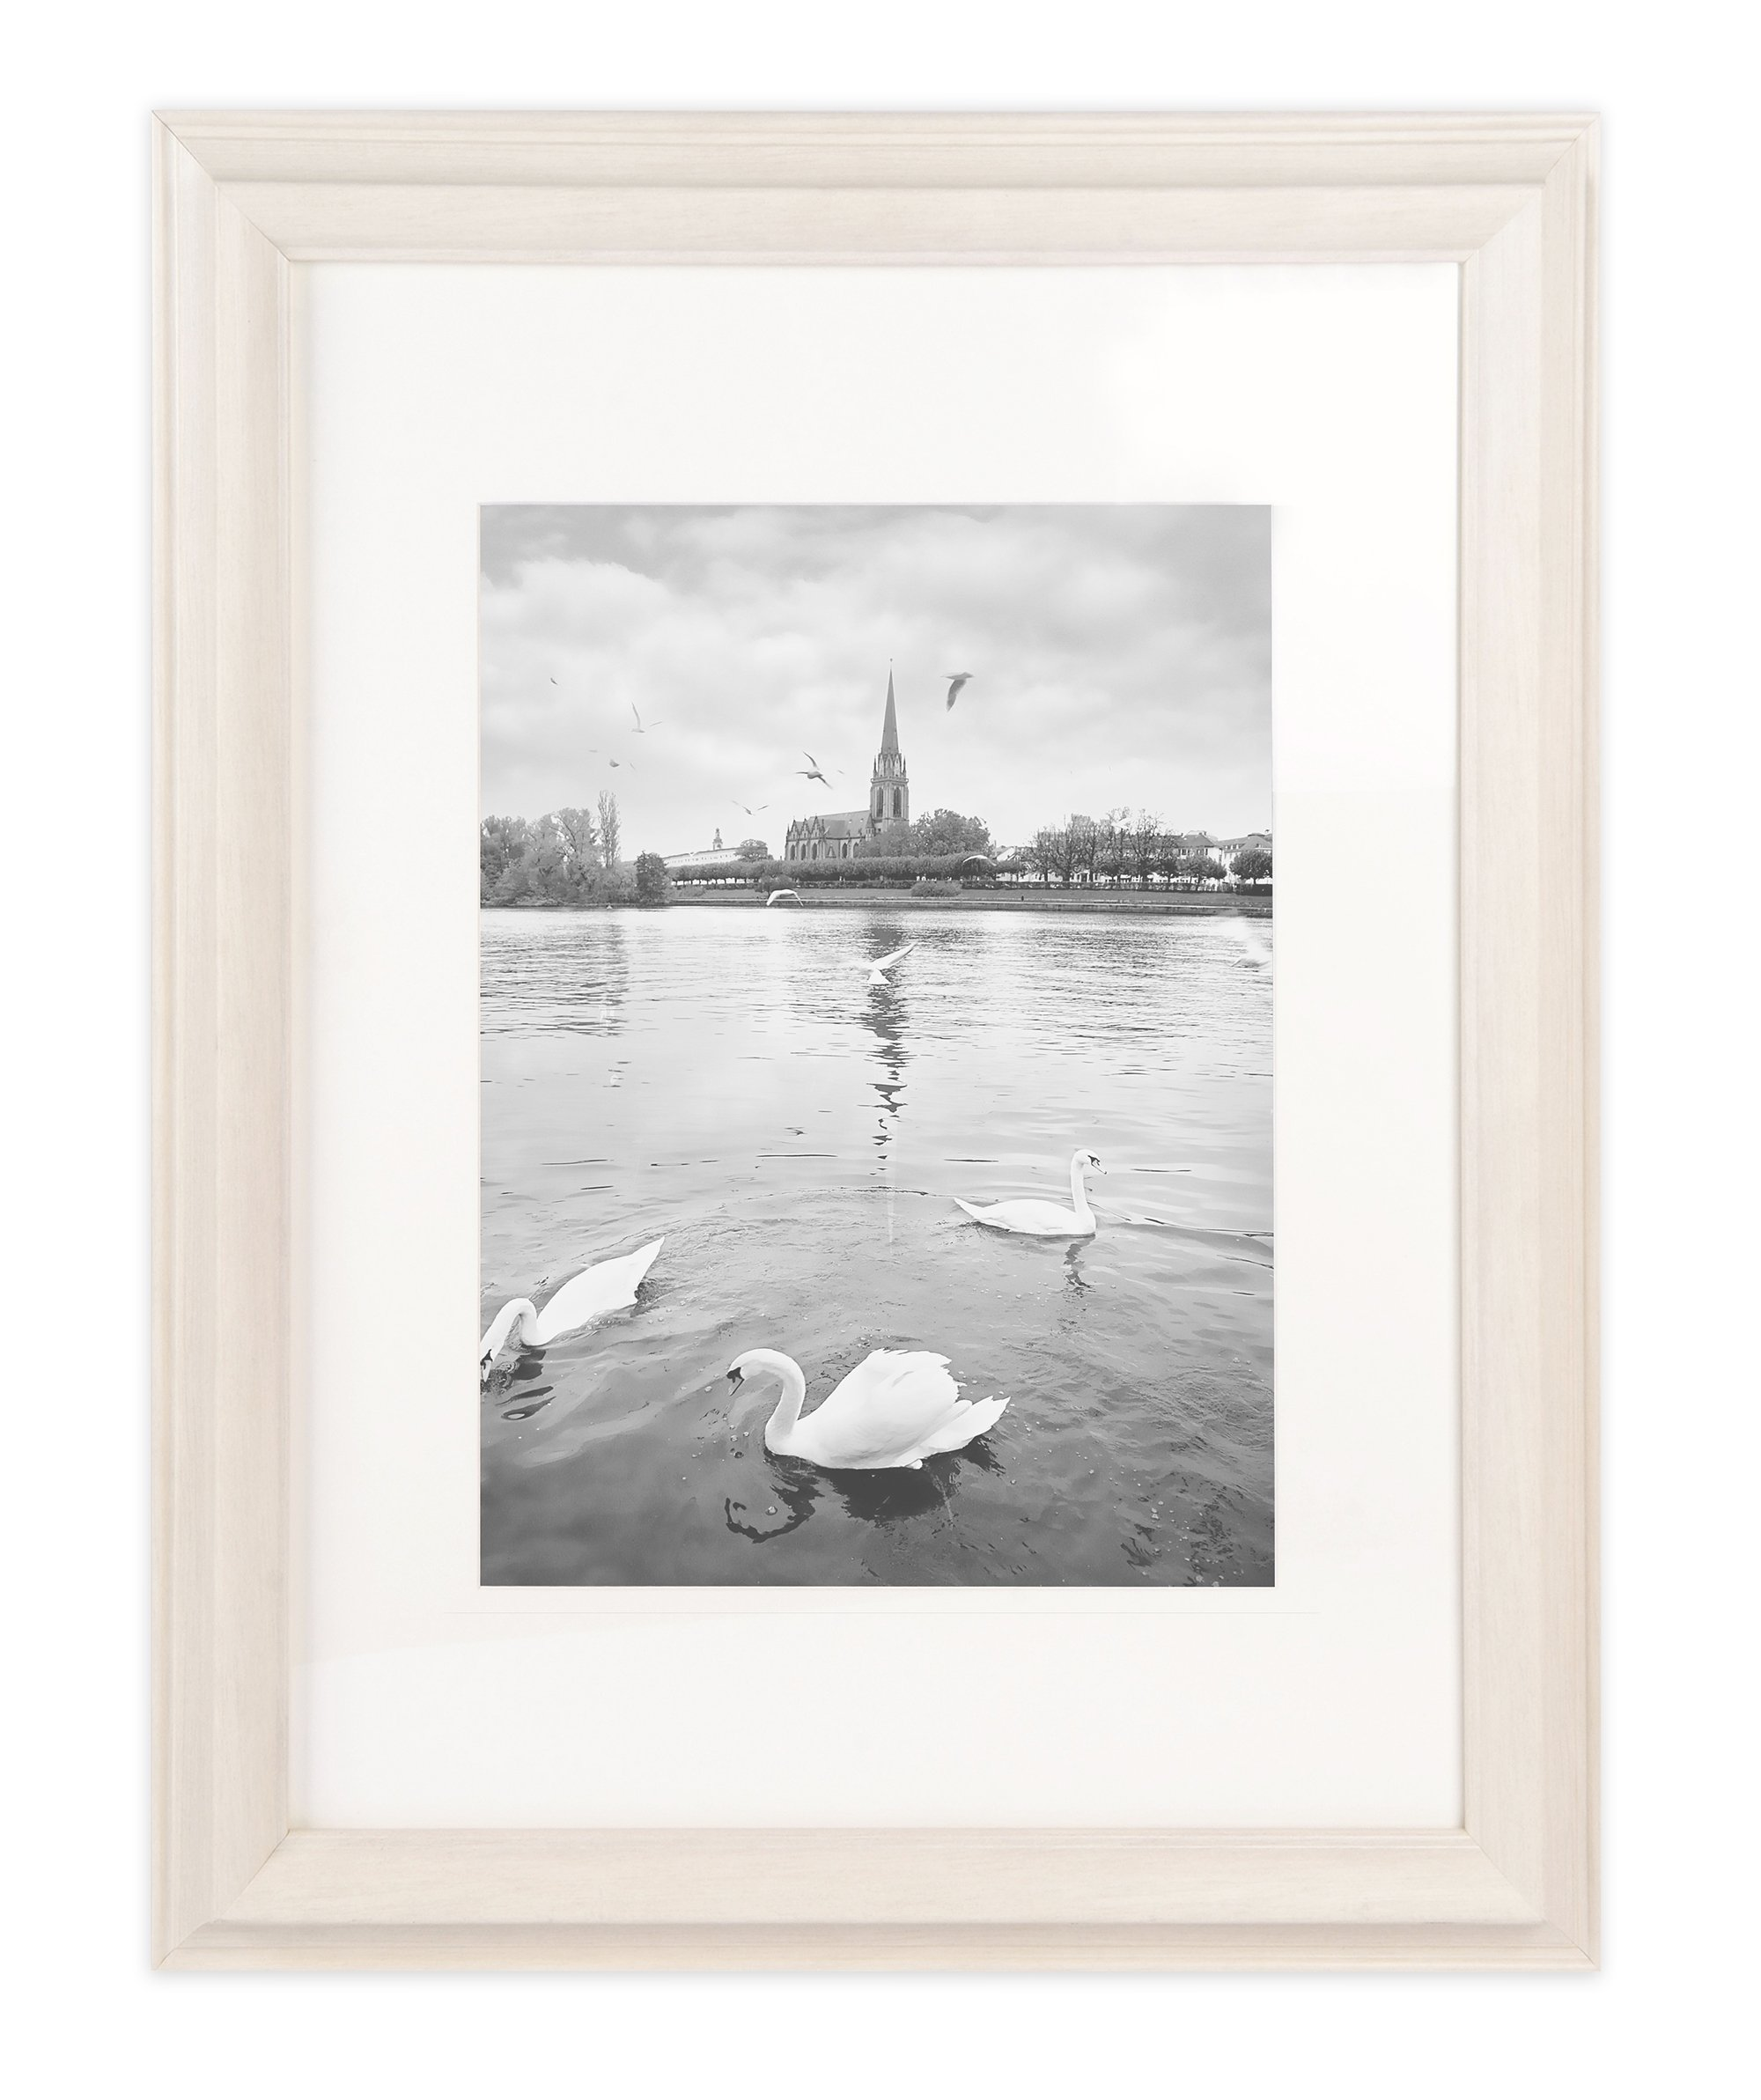 Cheap Frame 20 X 14 Find Frame 20 X 14 Deals On Line At Alibabacom